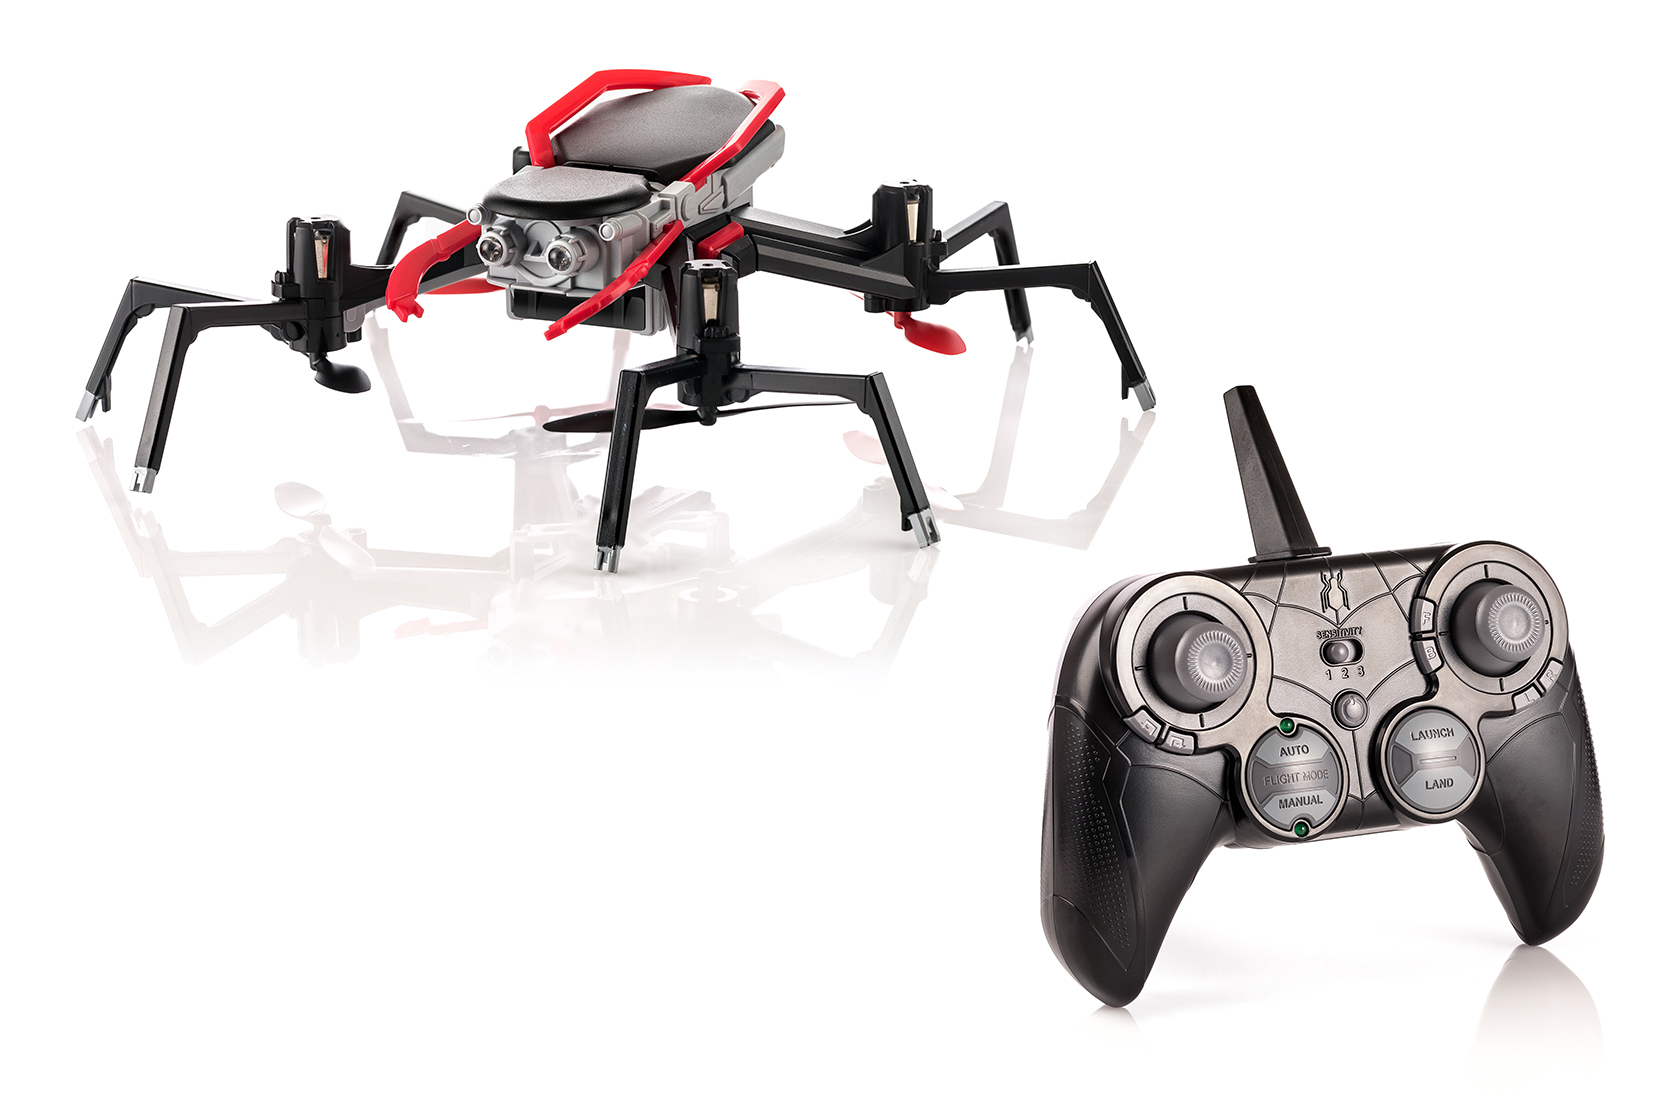 Spider-Drone , The Official Spider-Man Homecoming Movie Edition, Powered by Sky Viper